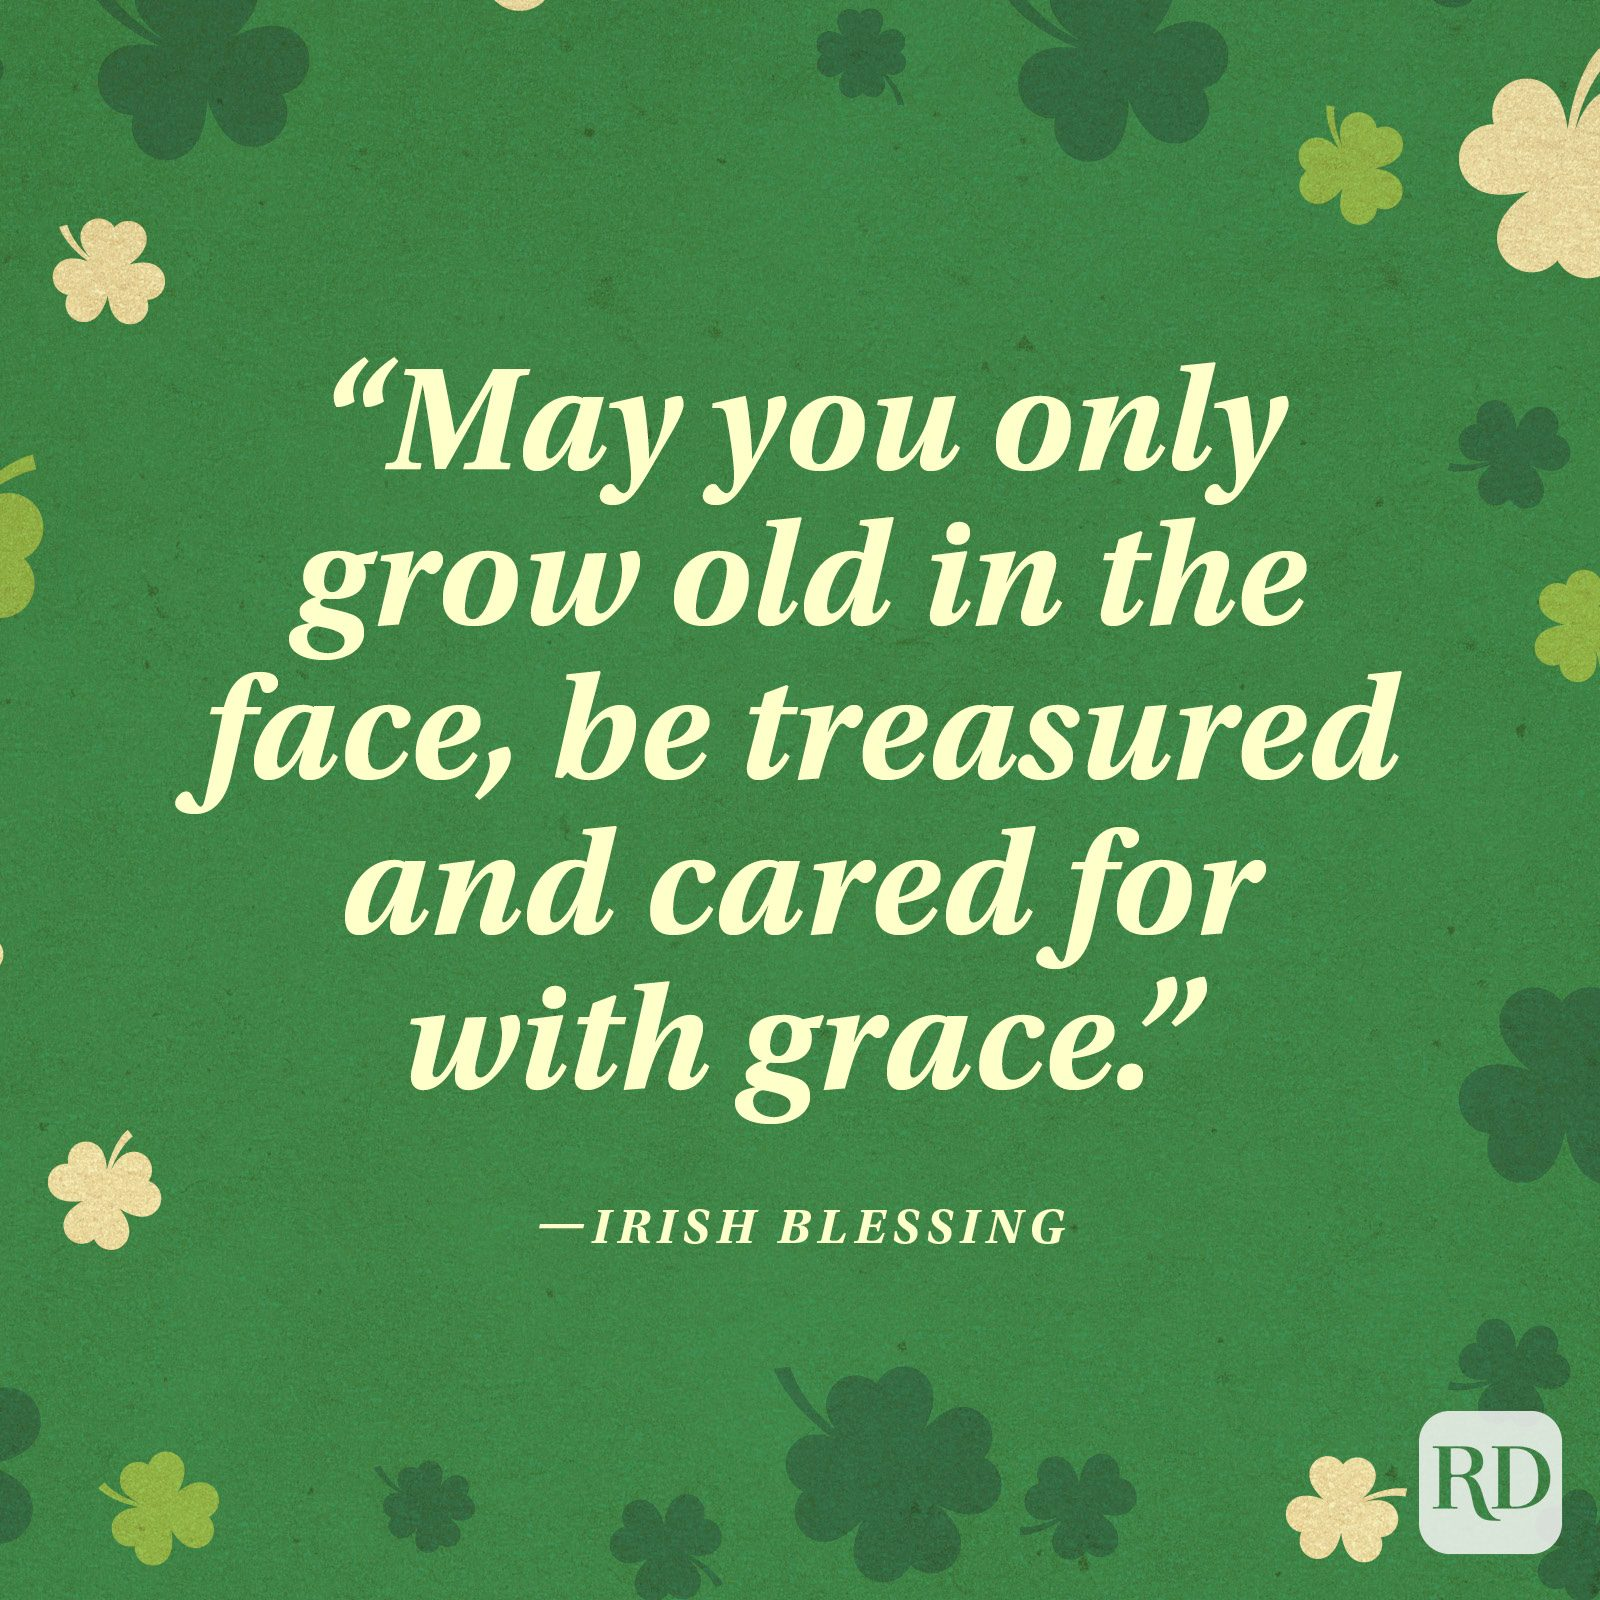 """May you only grow old in the face, be treasured and cared for with grace."" —Irish blessing"